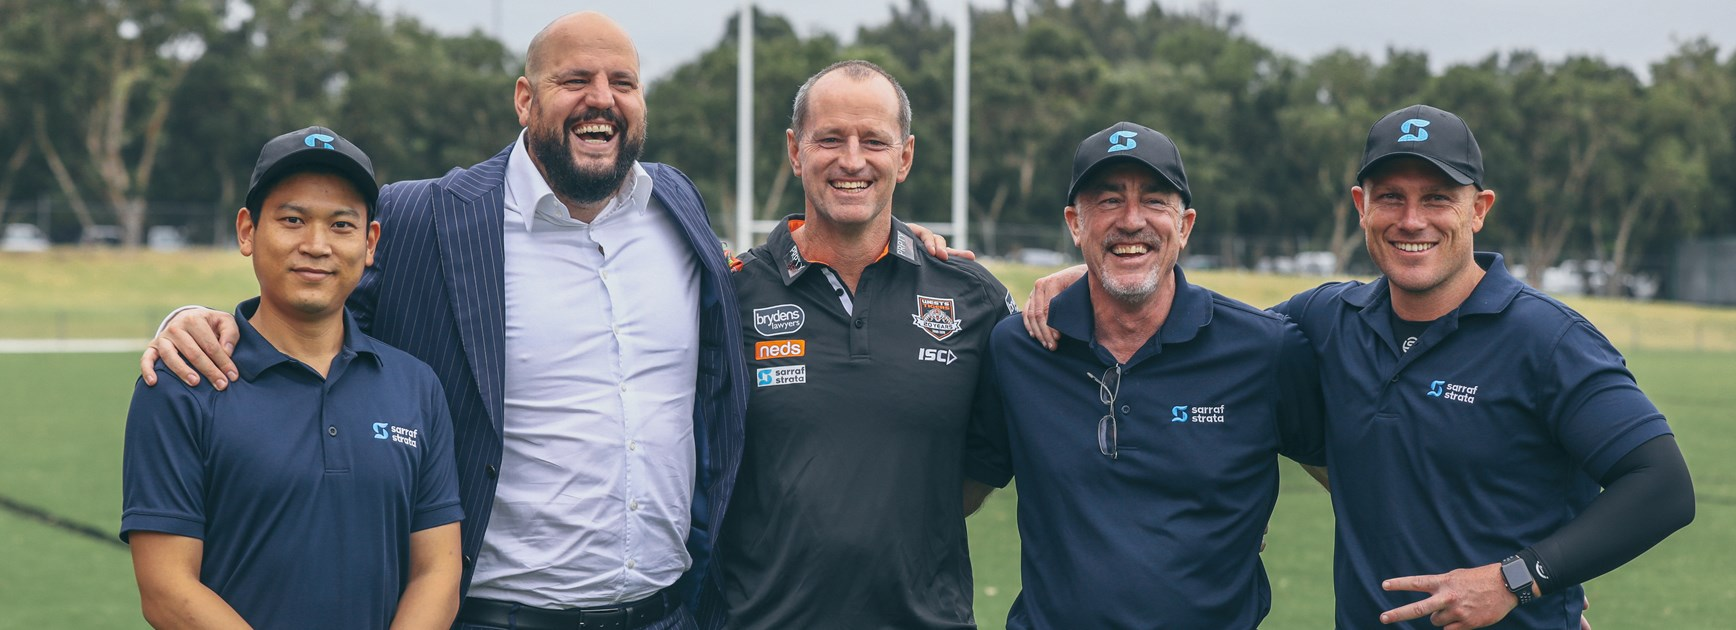 Sarraf Strata and PRPTY 360 join Wests Tigers